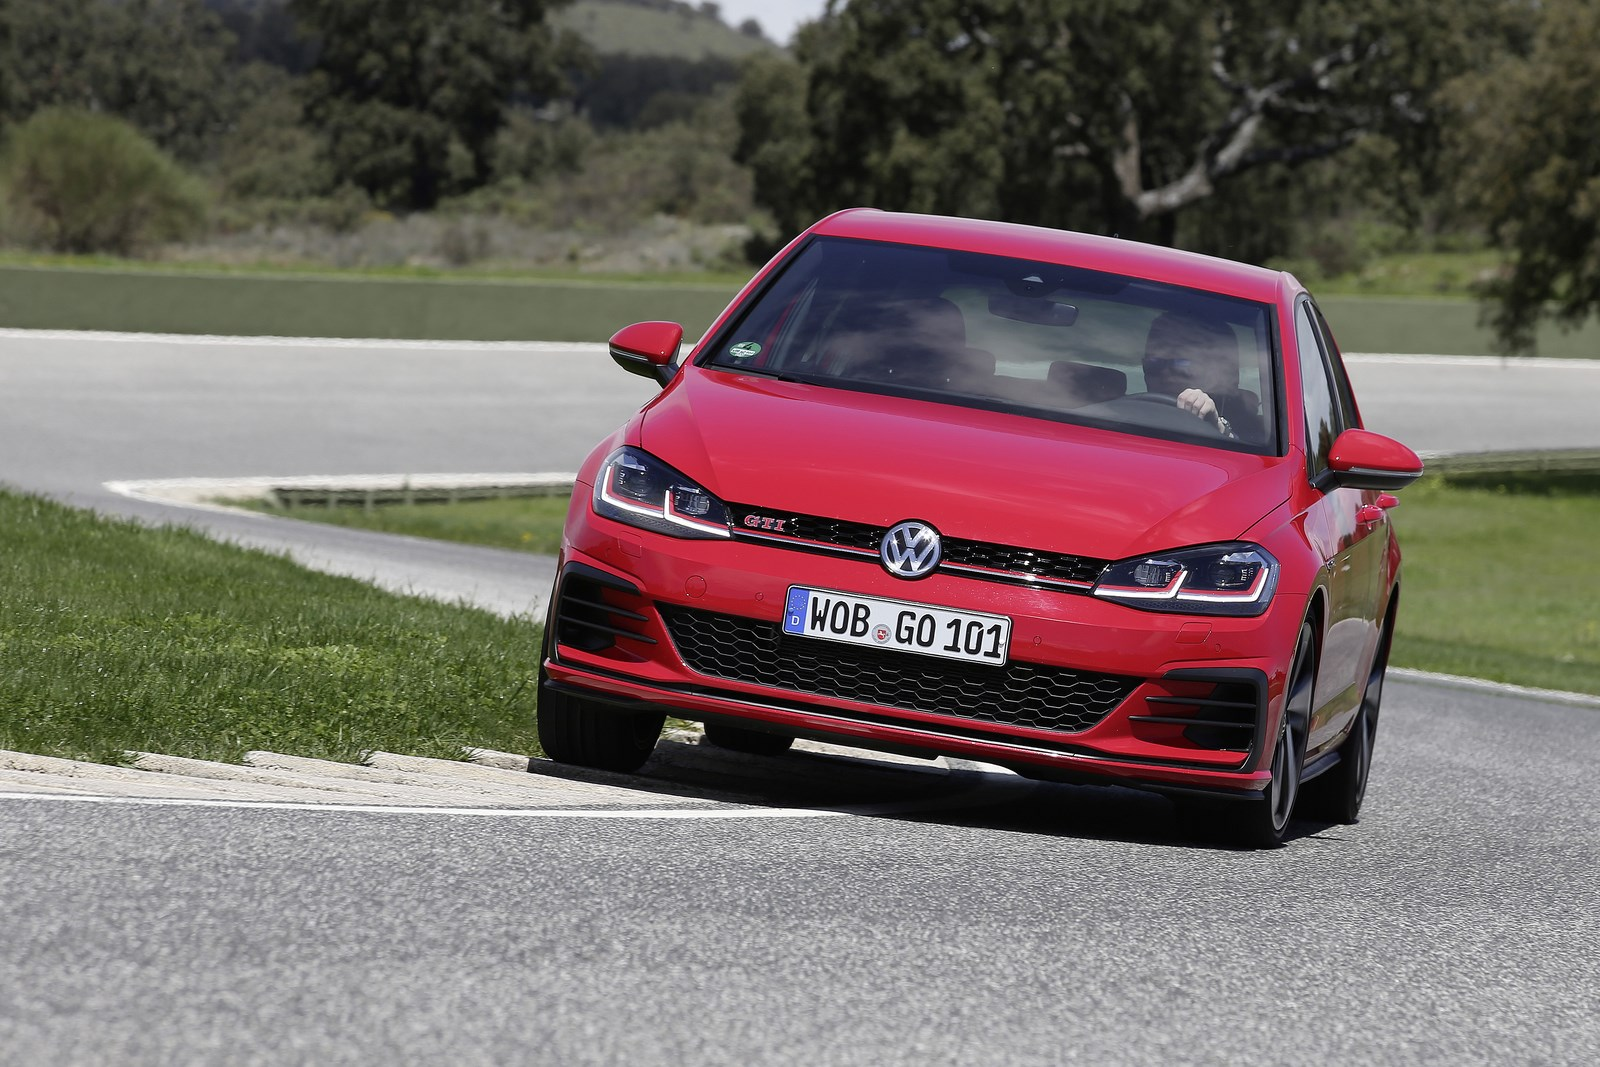 rumour no more 169kw golf gti for south africa torquing cars